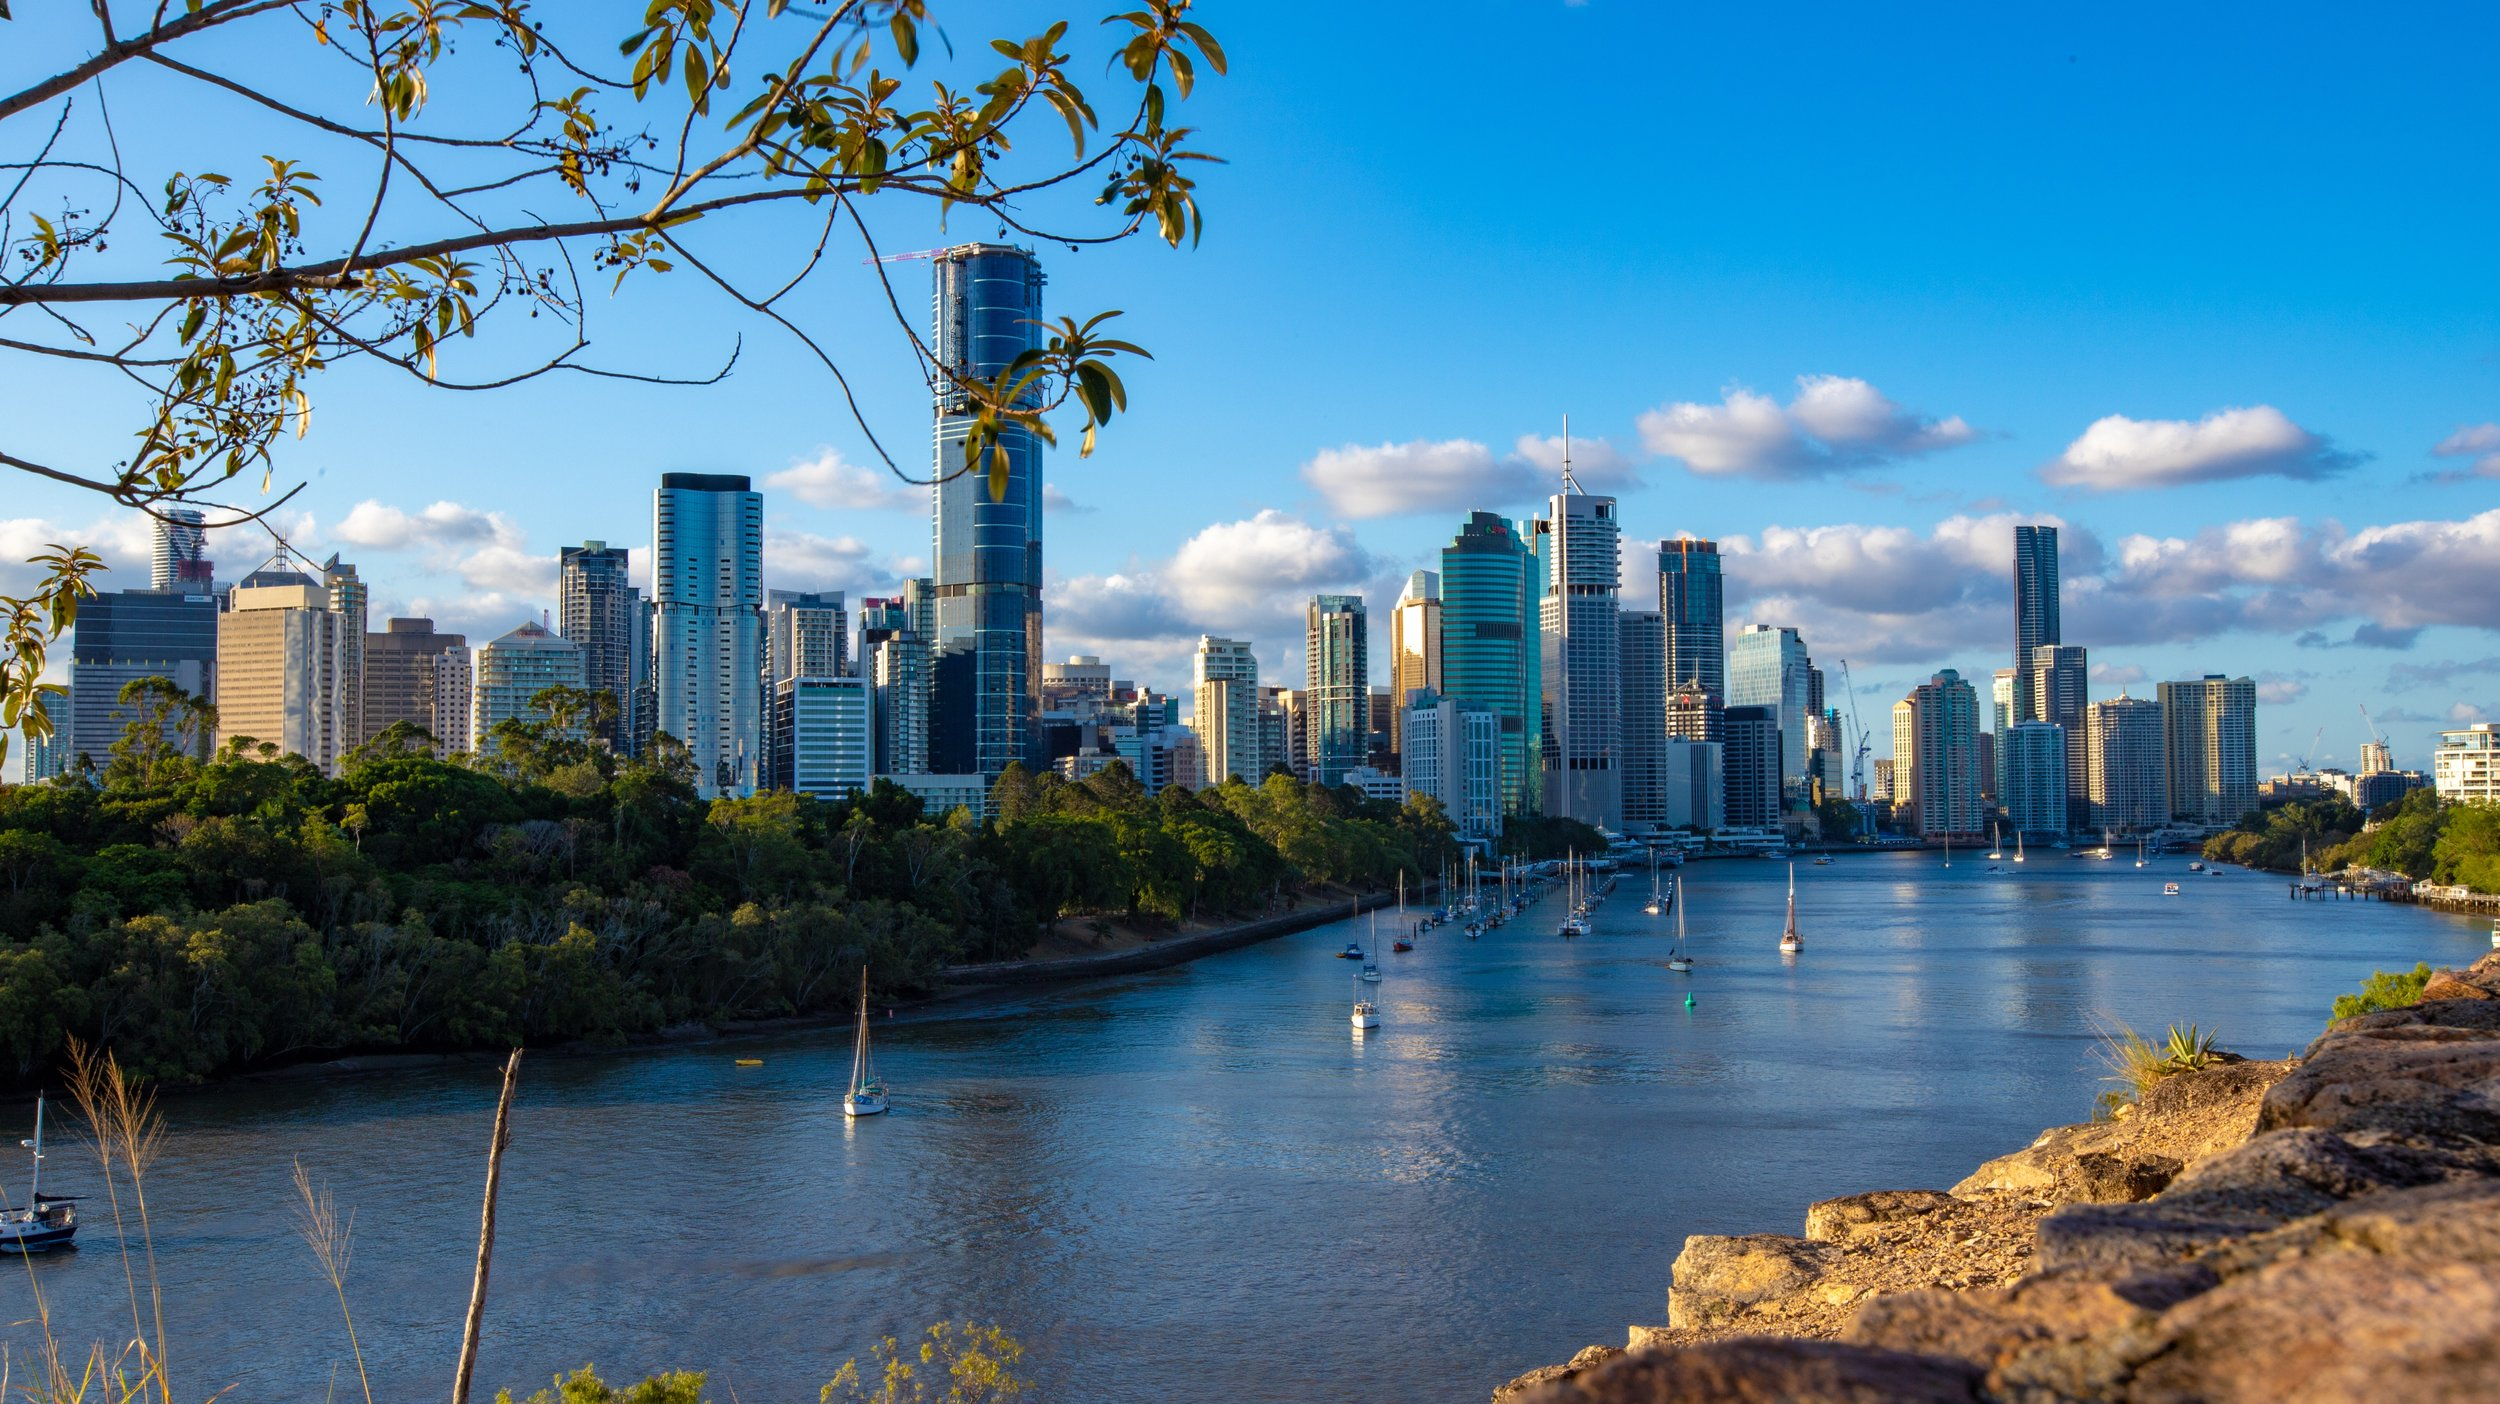 brisbane-local-marketing-1328234-unsplash (1).jpg